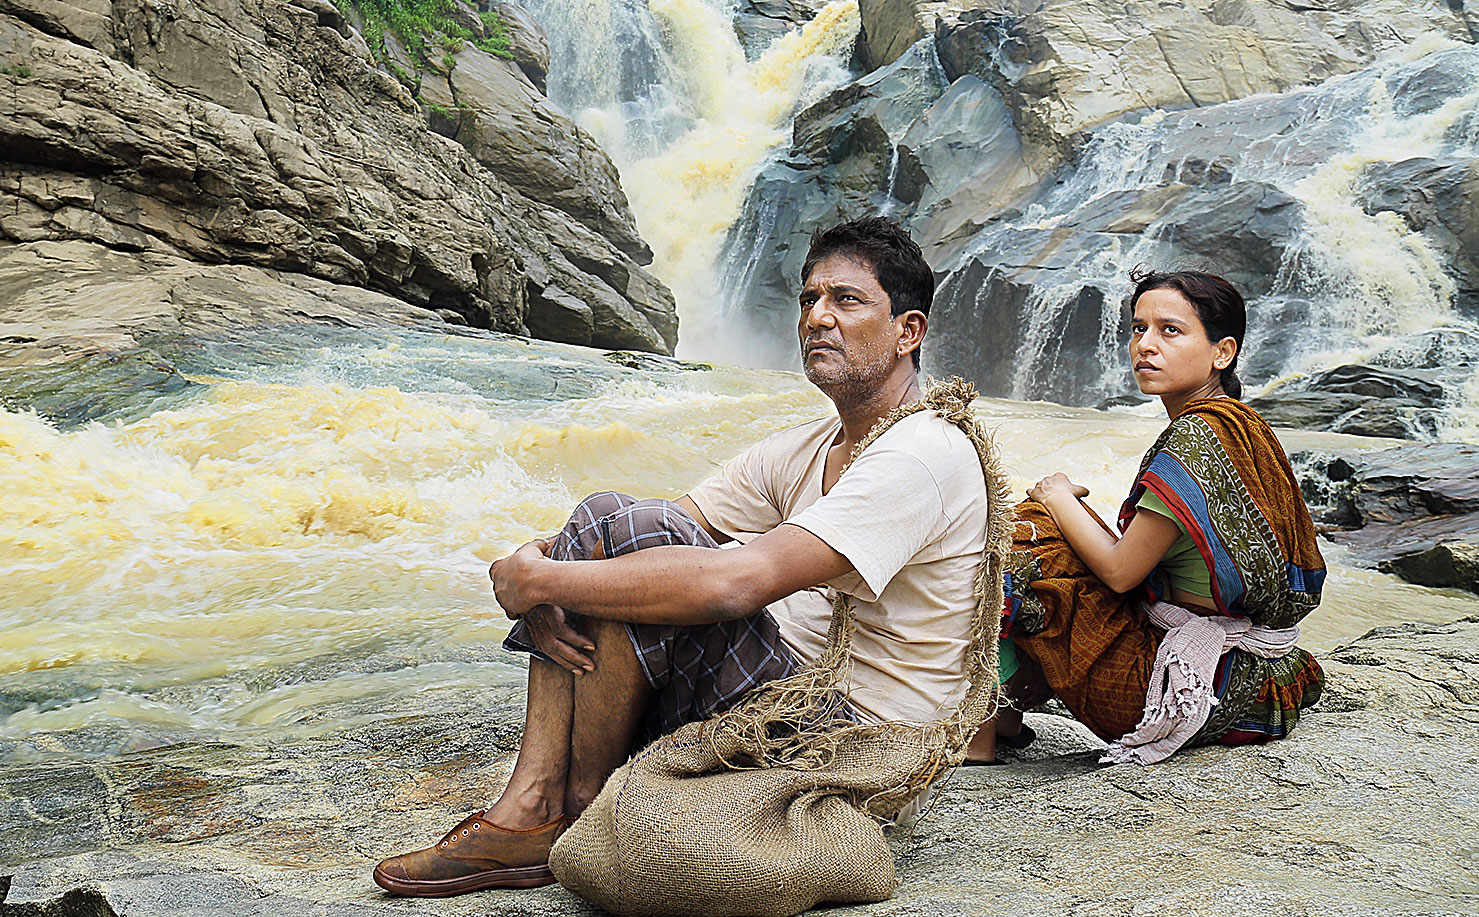 Adil Hussain and Tillotama Shome in a still from Raahgir.